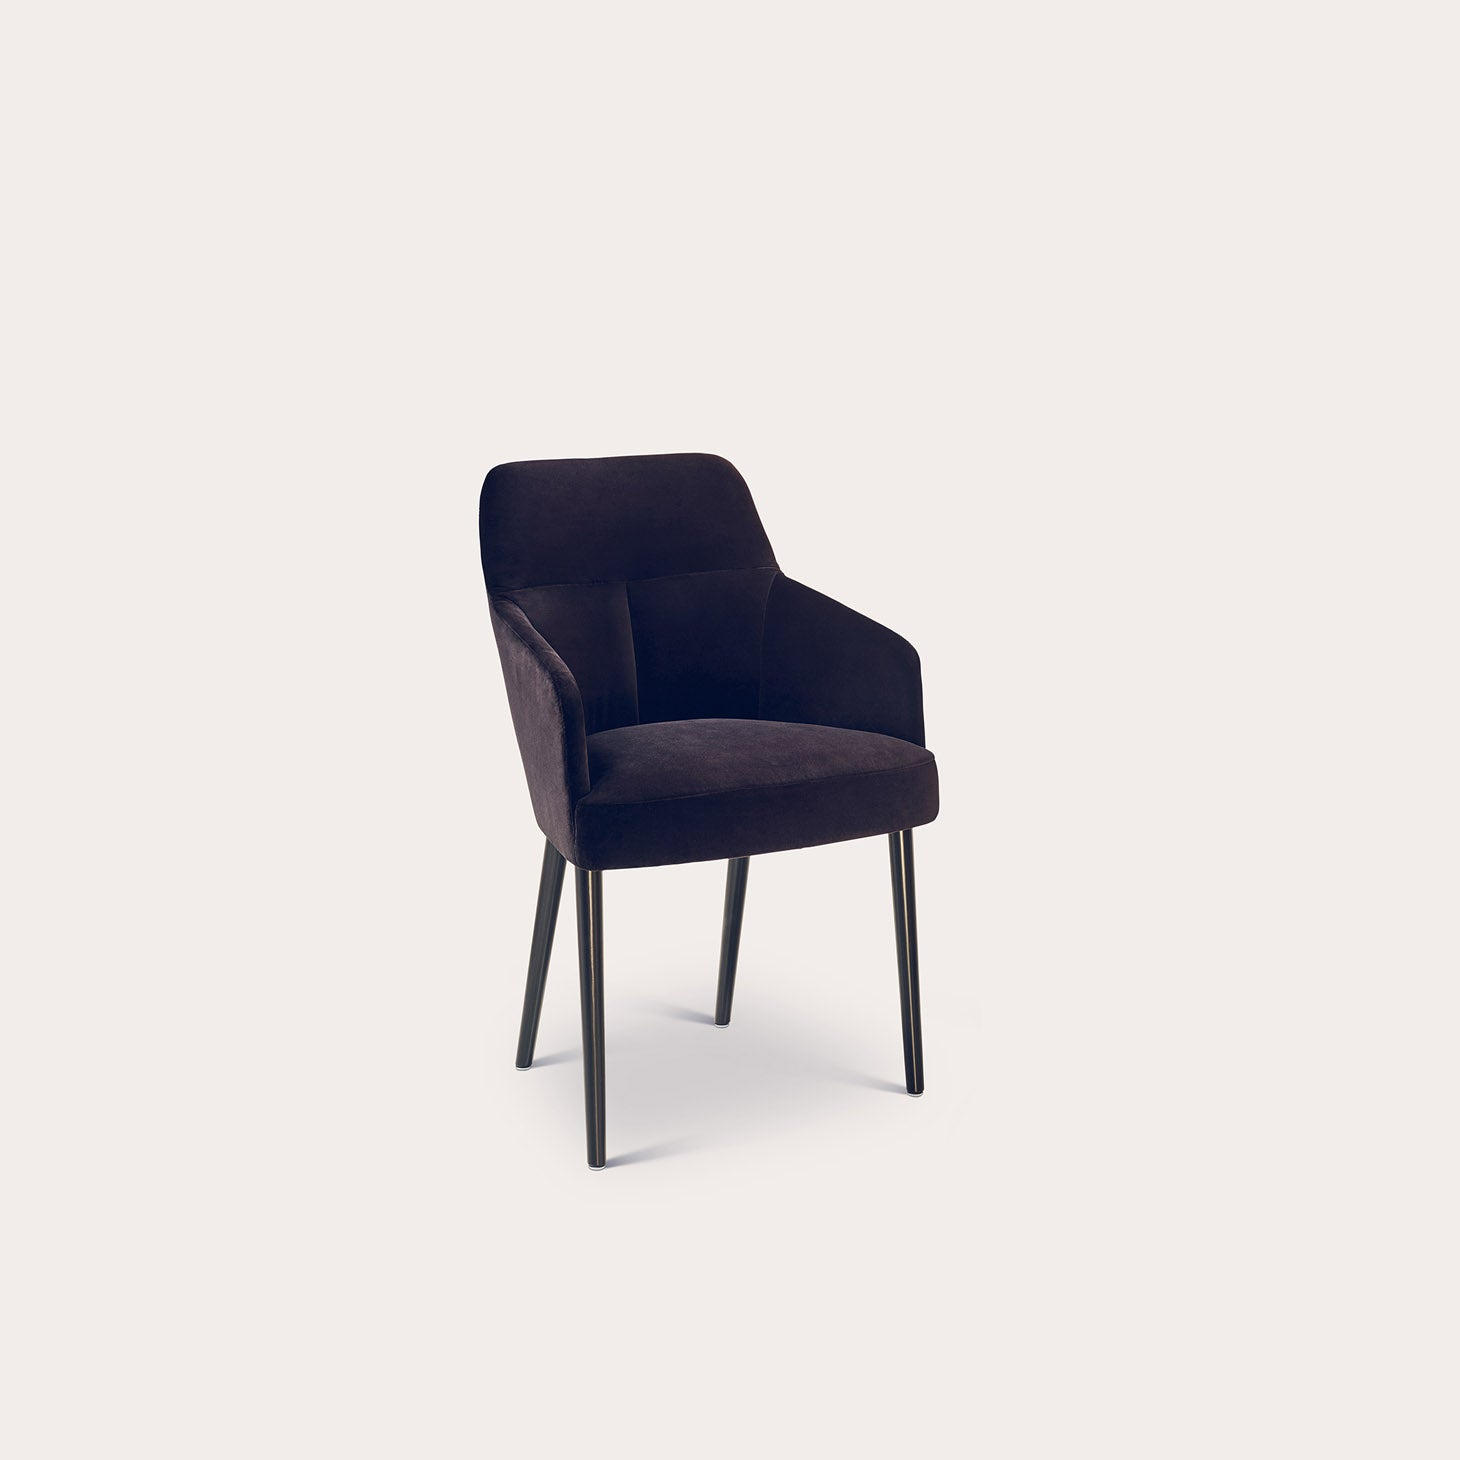 Mono Seating Marco Dessi Designer Furniture Sku: 758-120-10040